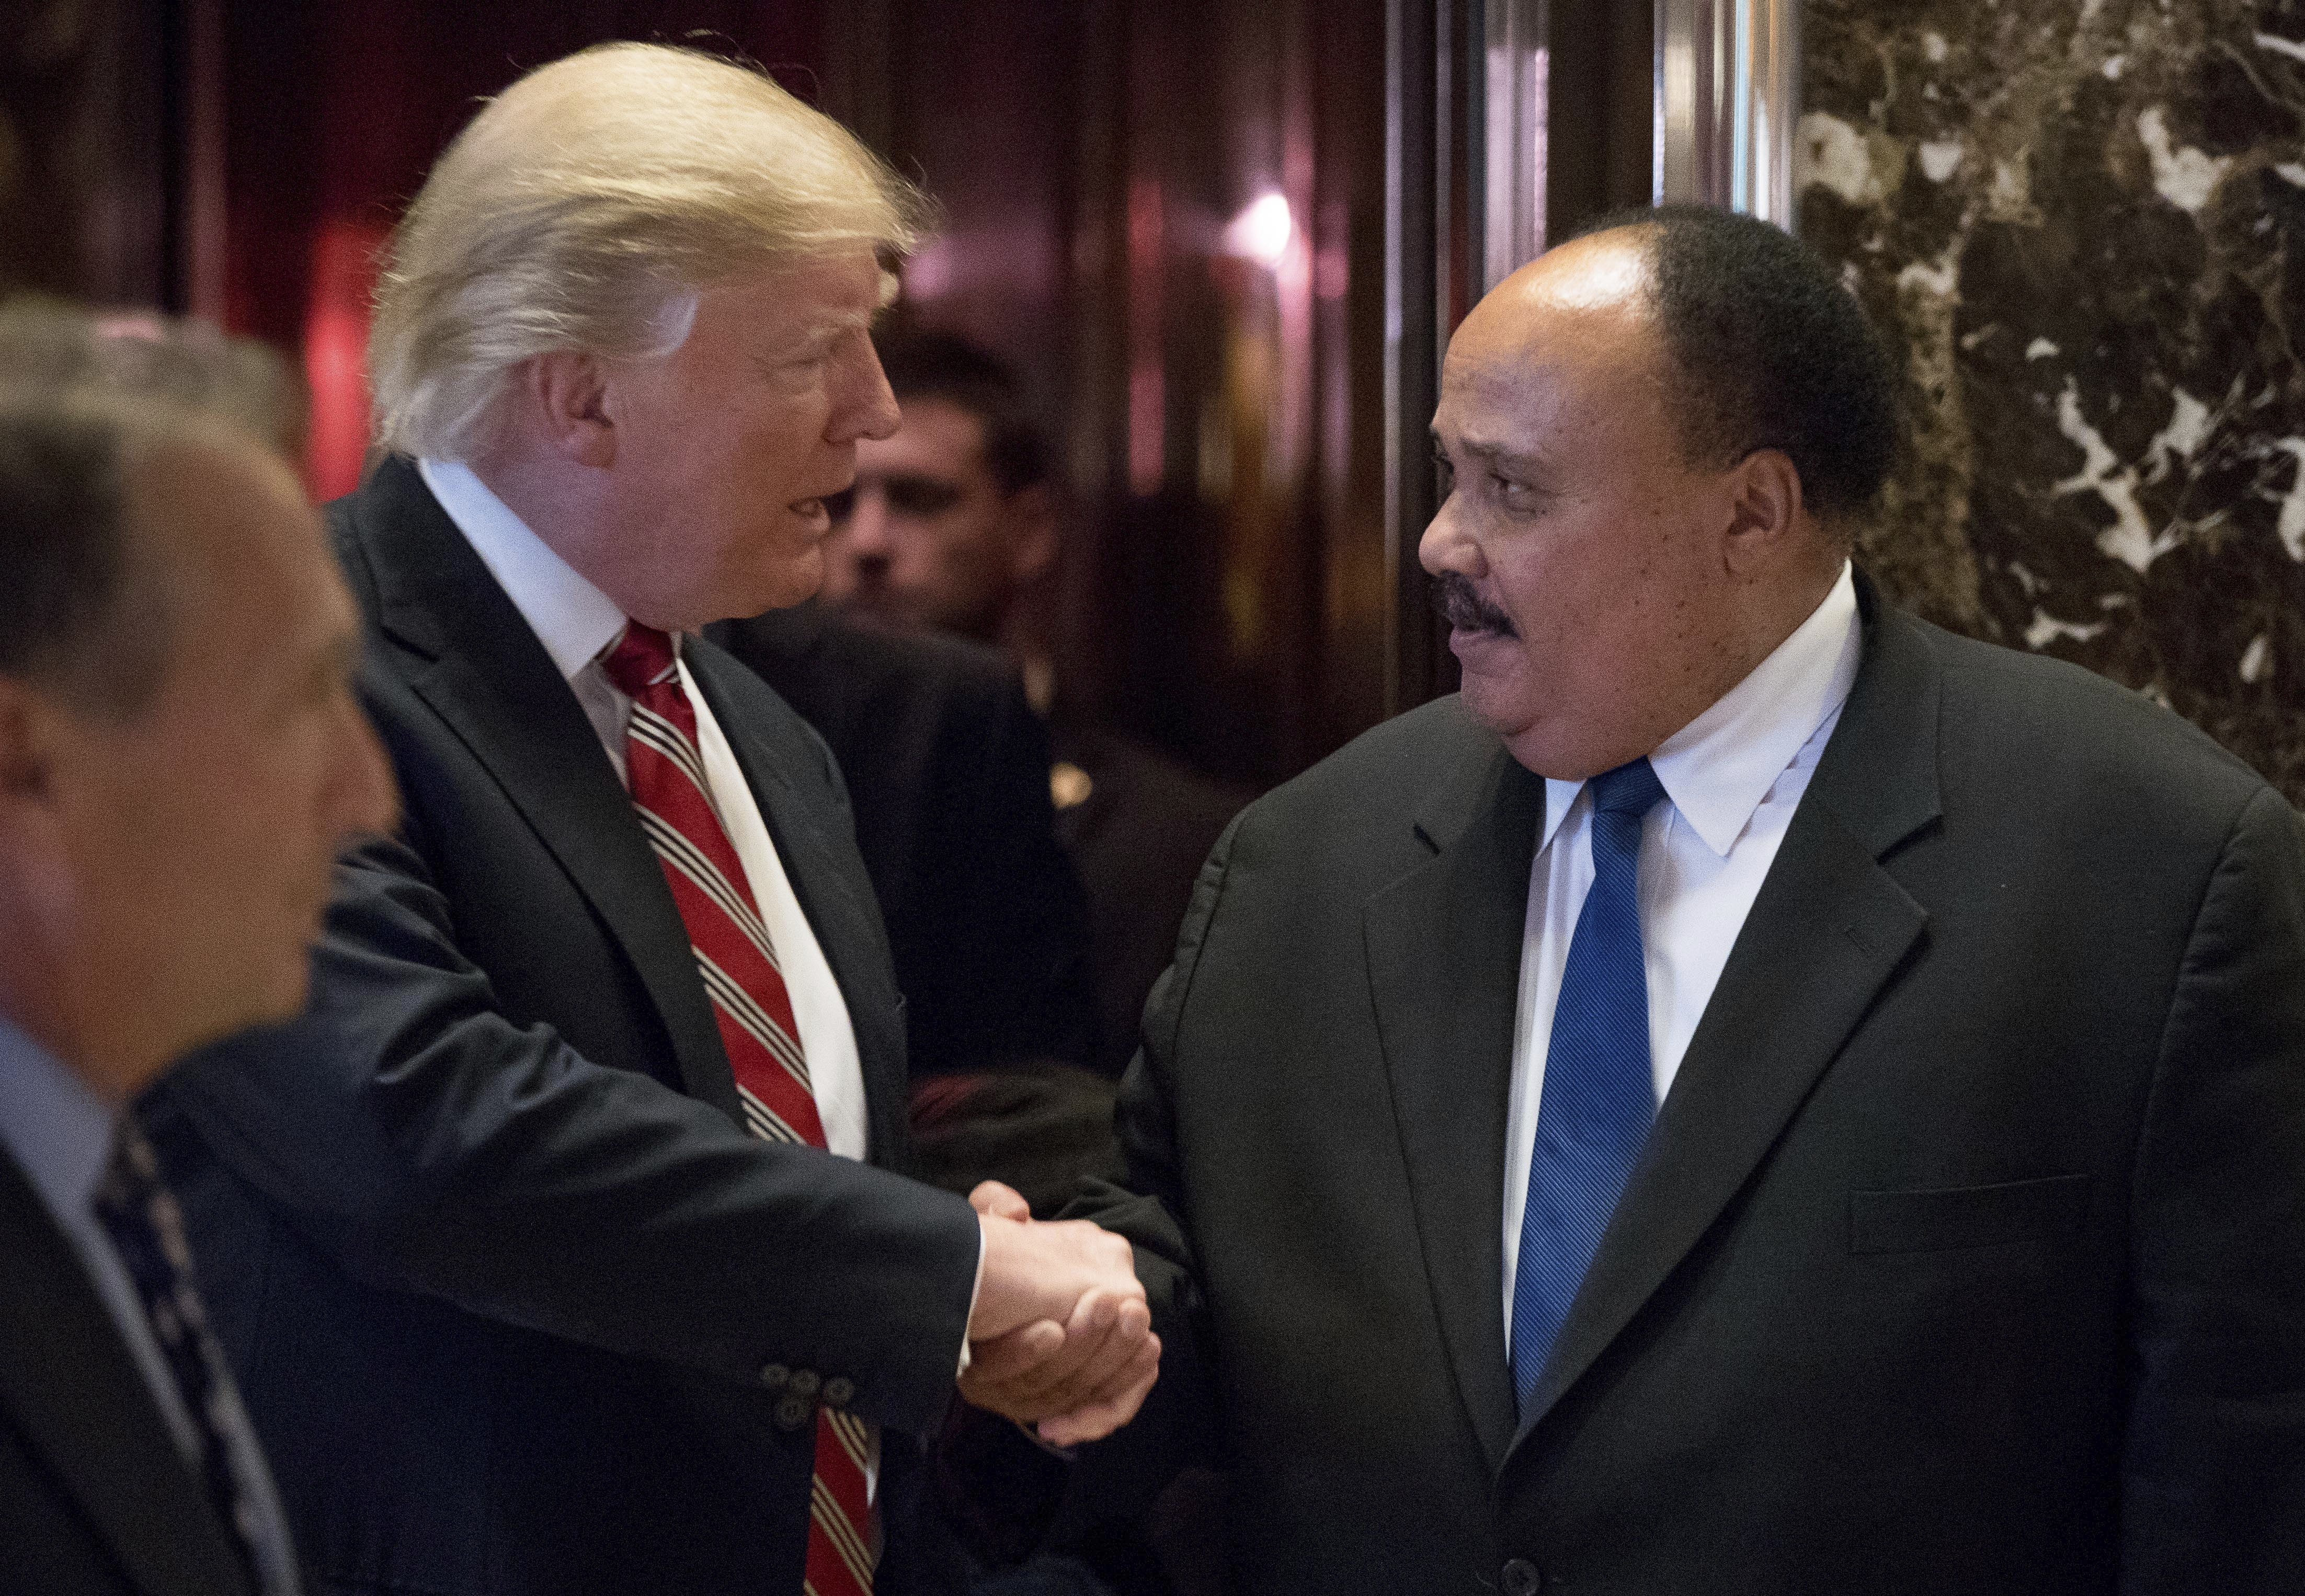 Martin Luther King Iii Trump Intends To Represent All Americans